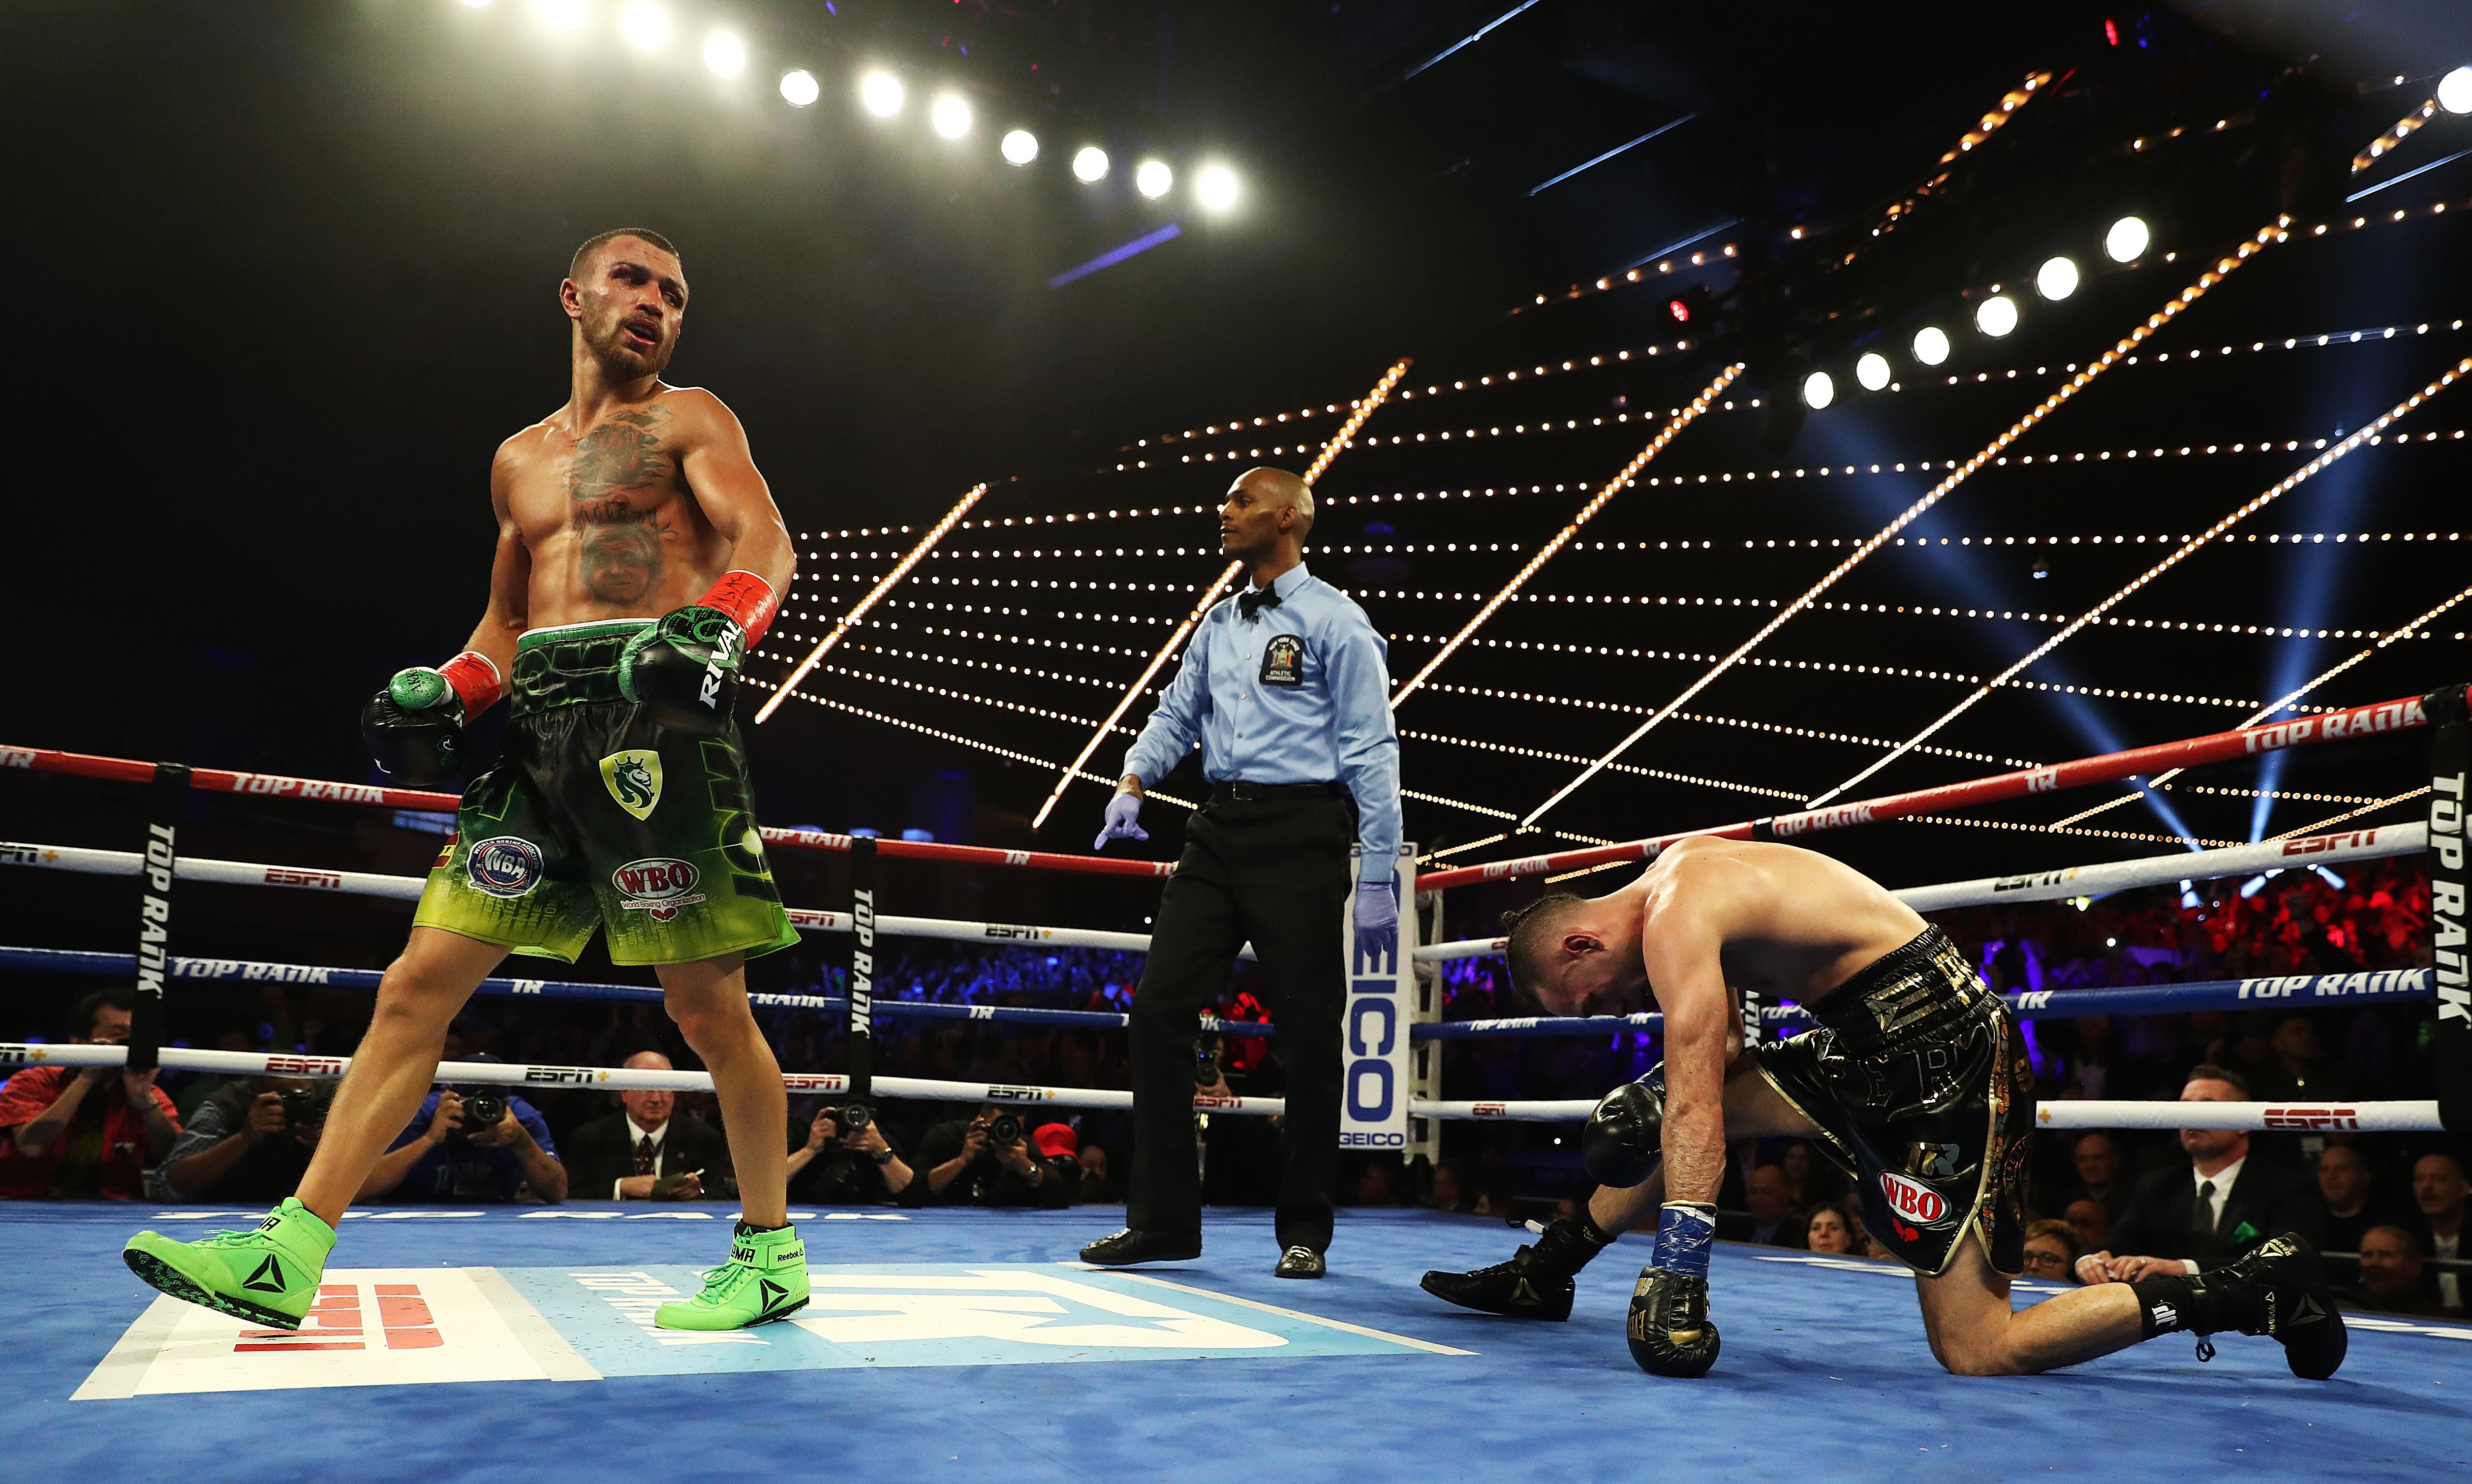 Vasiliy Lomachenko overwhelms José Pedraza late to unify lightweight titles